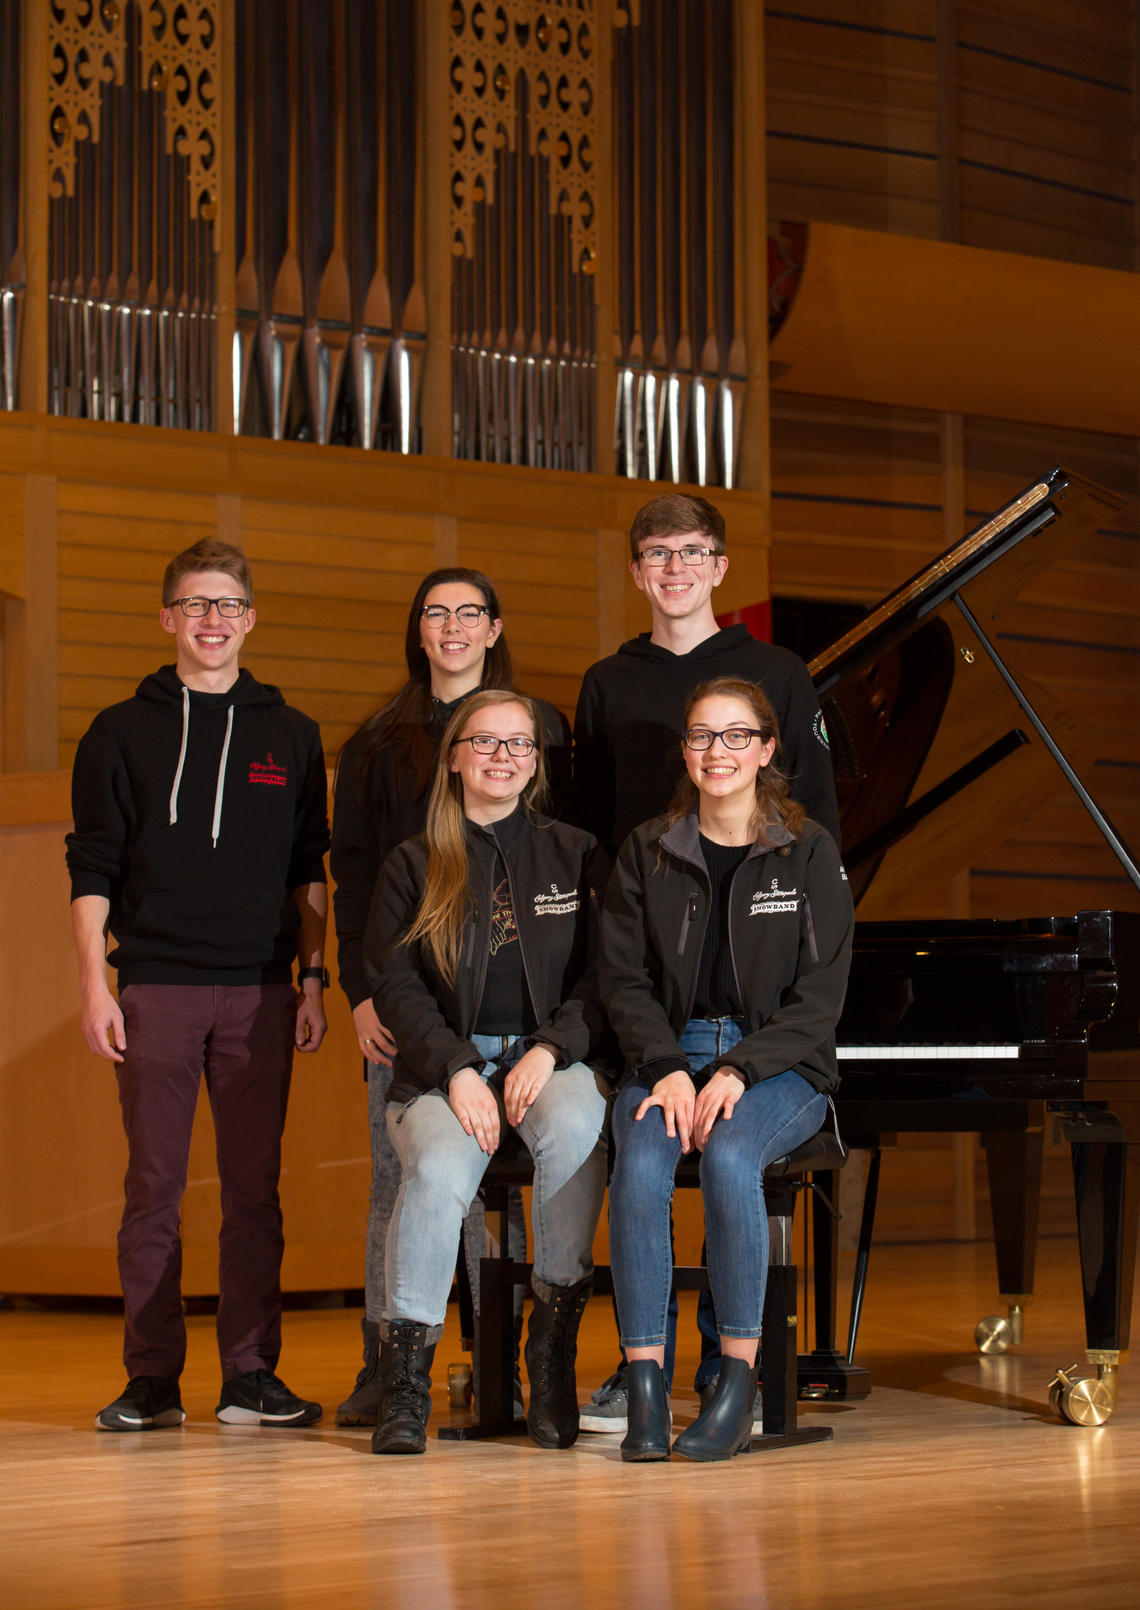 Among University of Calgary students taking part in the upcoming Alberta International Band Festival on campus are, standing, from left: Connor Beatty, Renee Thoutenhoofd, and Ethan Toblan. Seated, from left: Jessica Silbernagel and Anna Carlson.